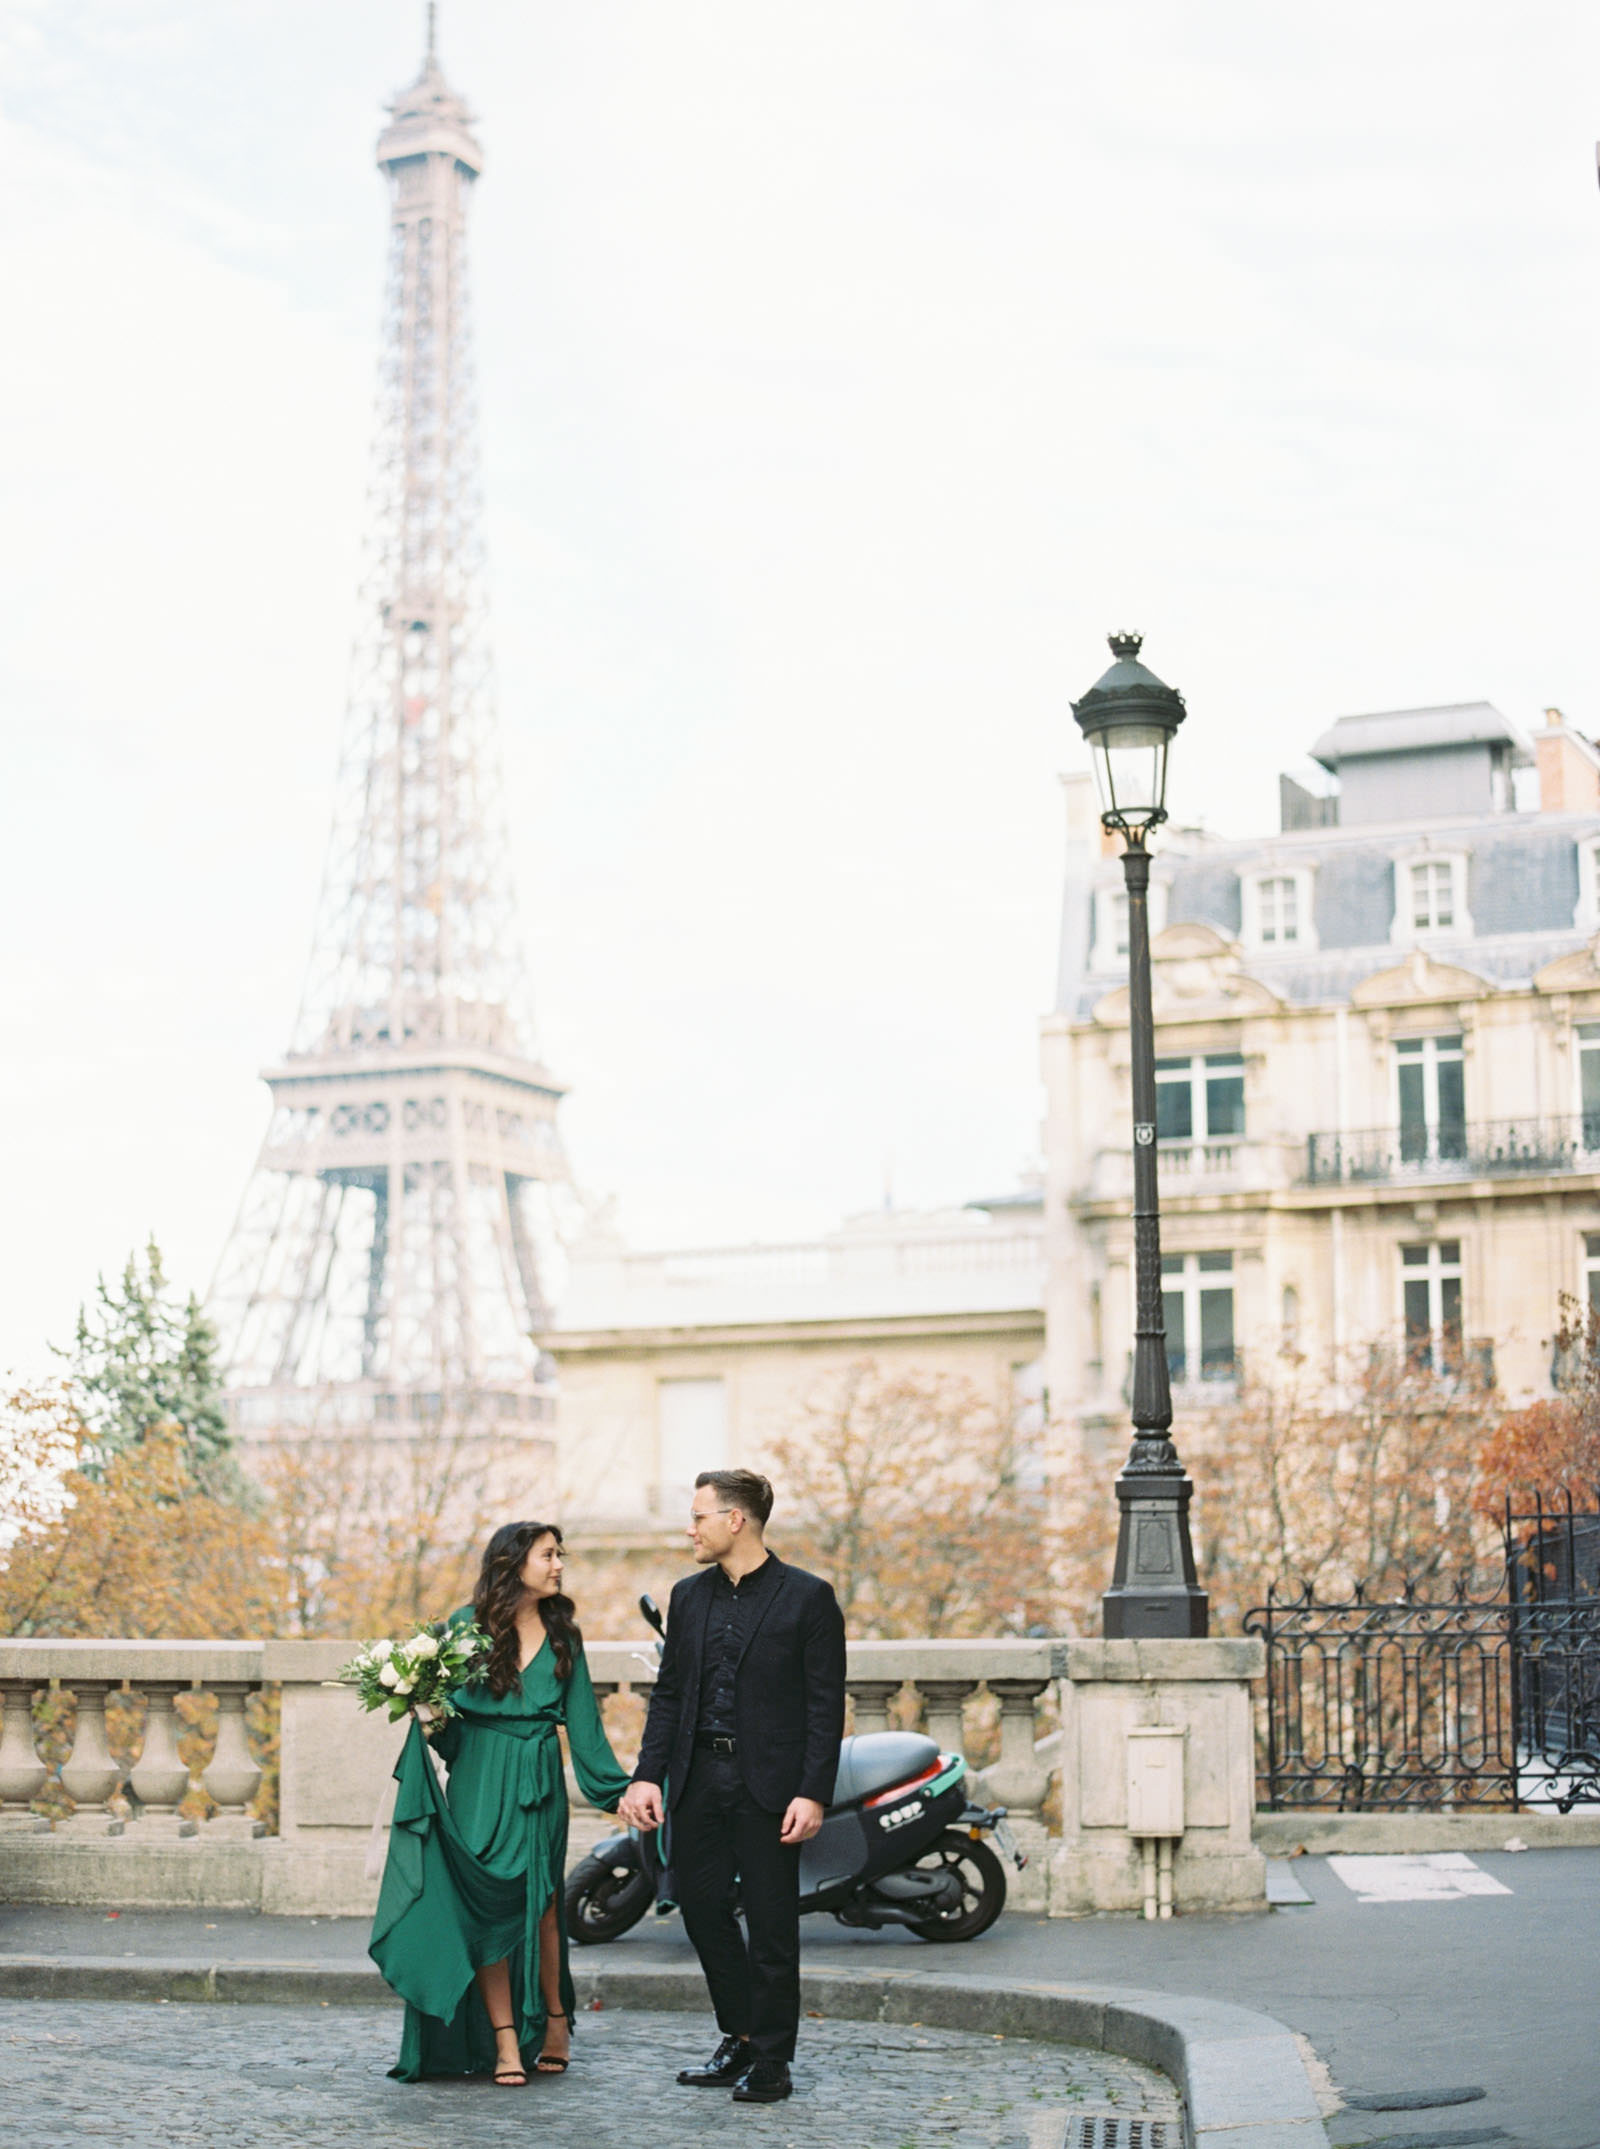 Engagement photos near Eiffel Tower - film photography - KR Moreno Photo